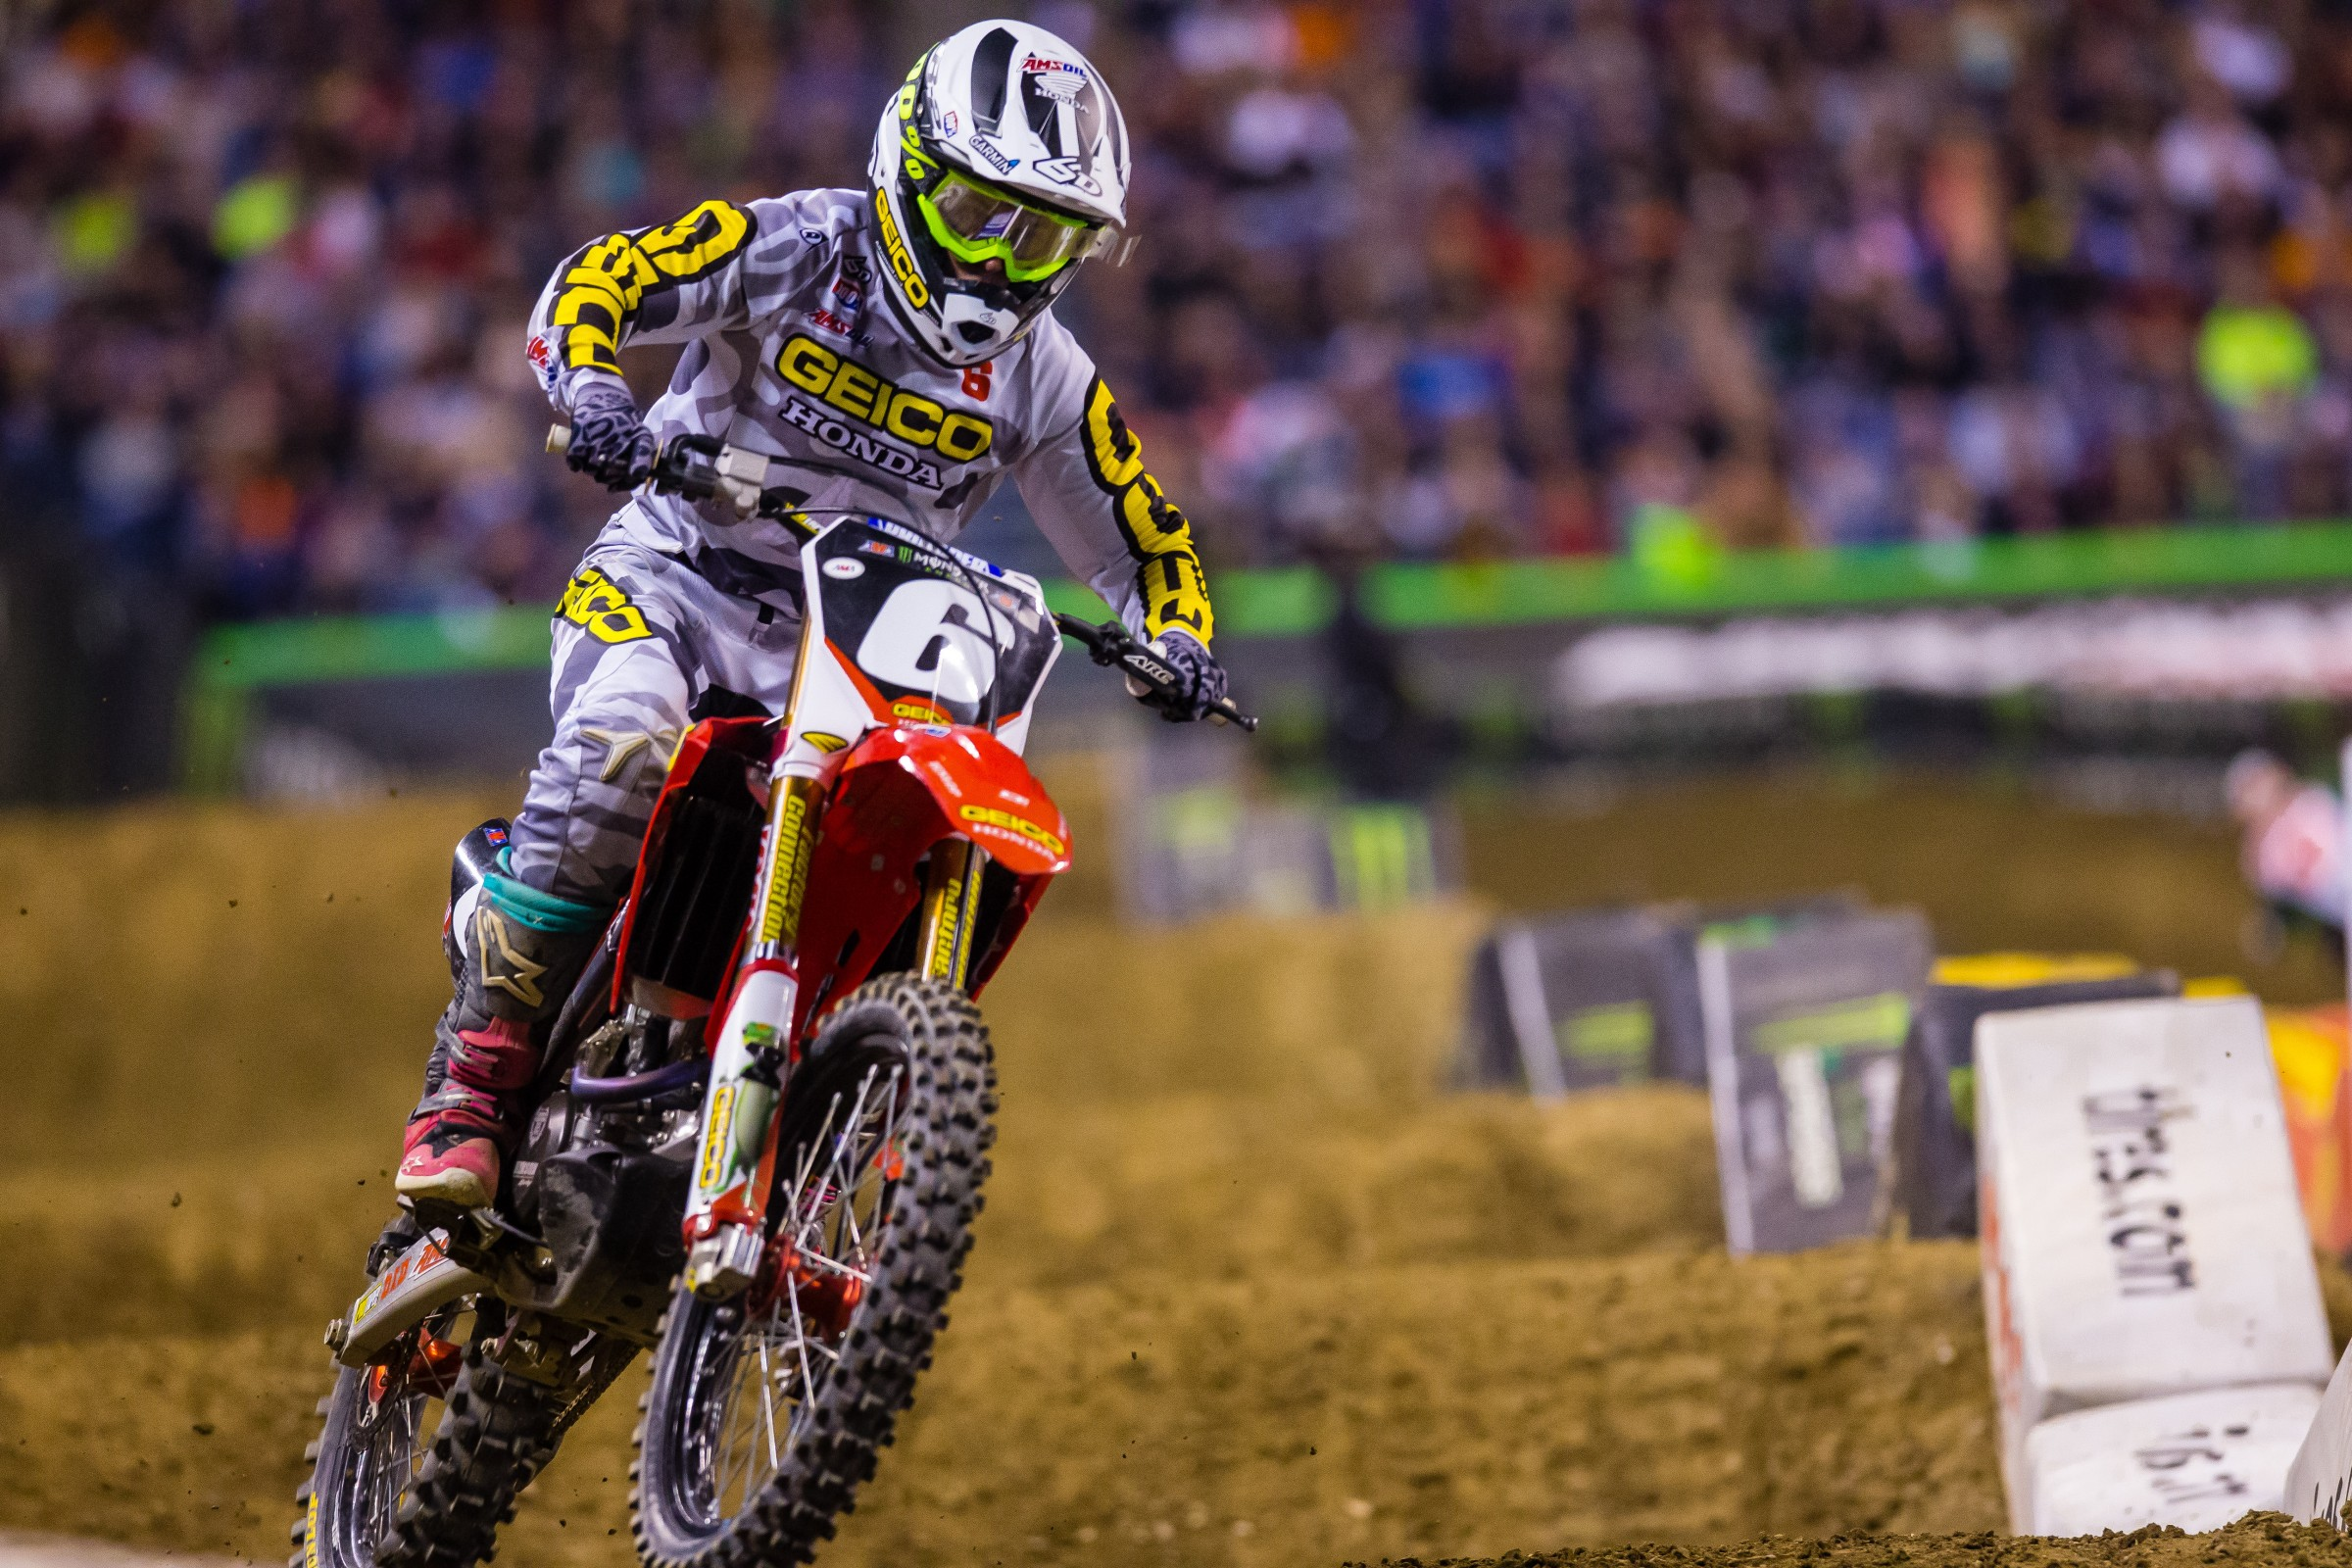 Martin currently sits in fourth place in 250SX East Region championship standings with 112 points.